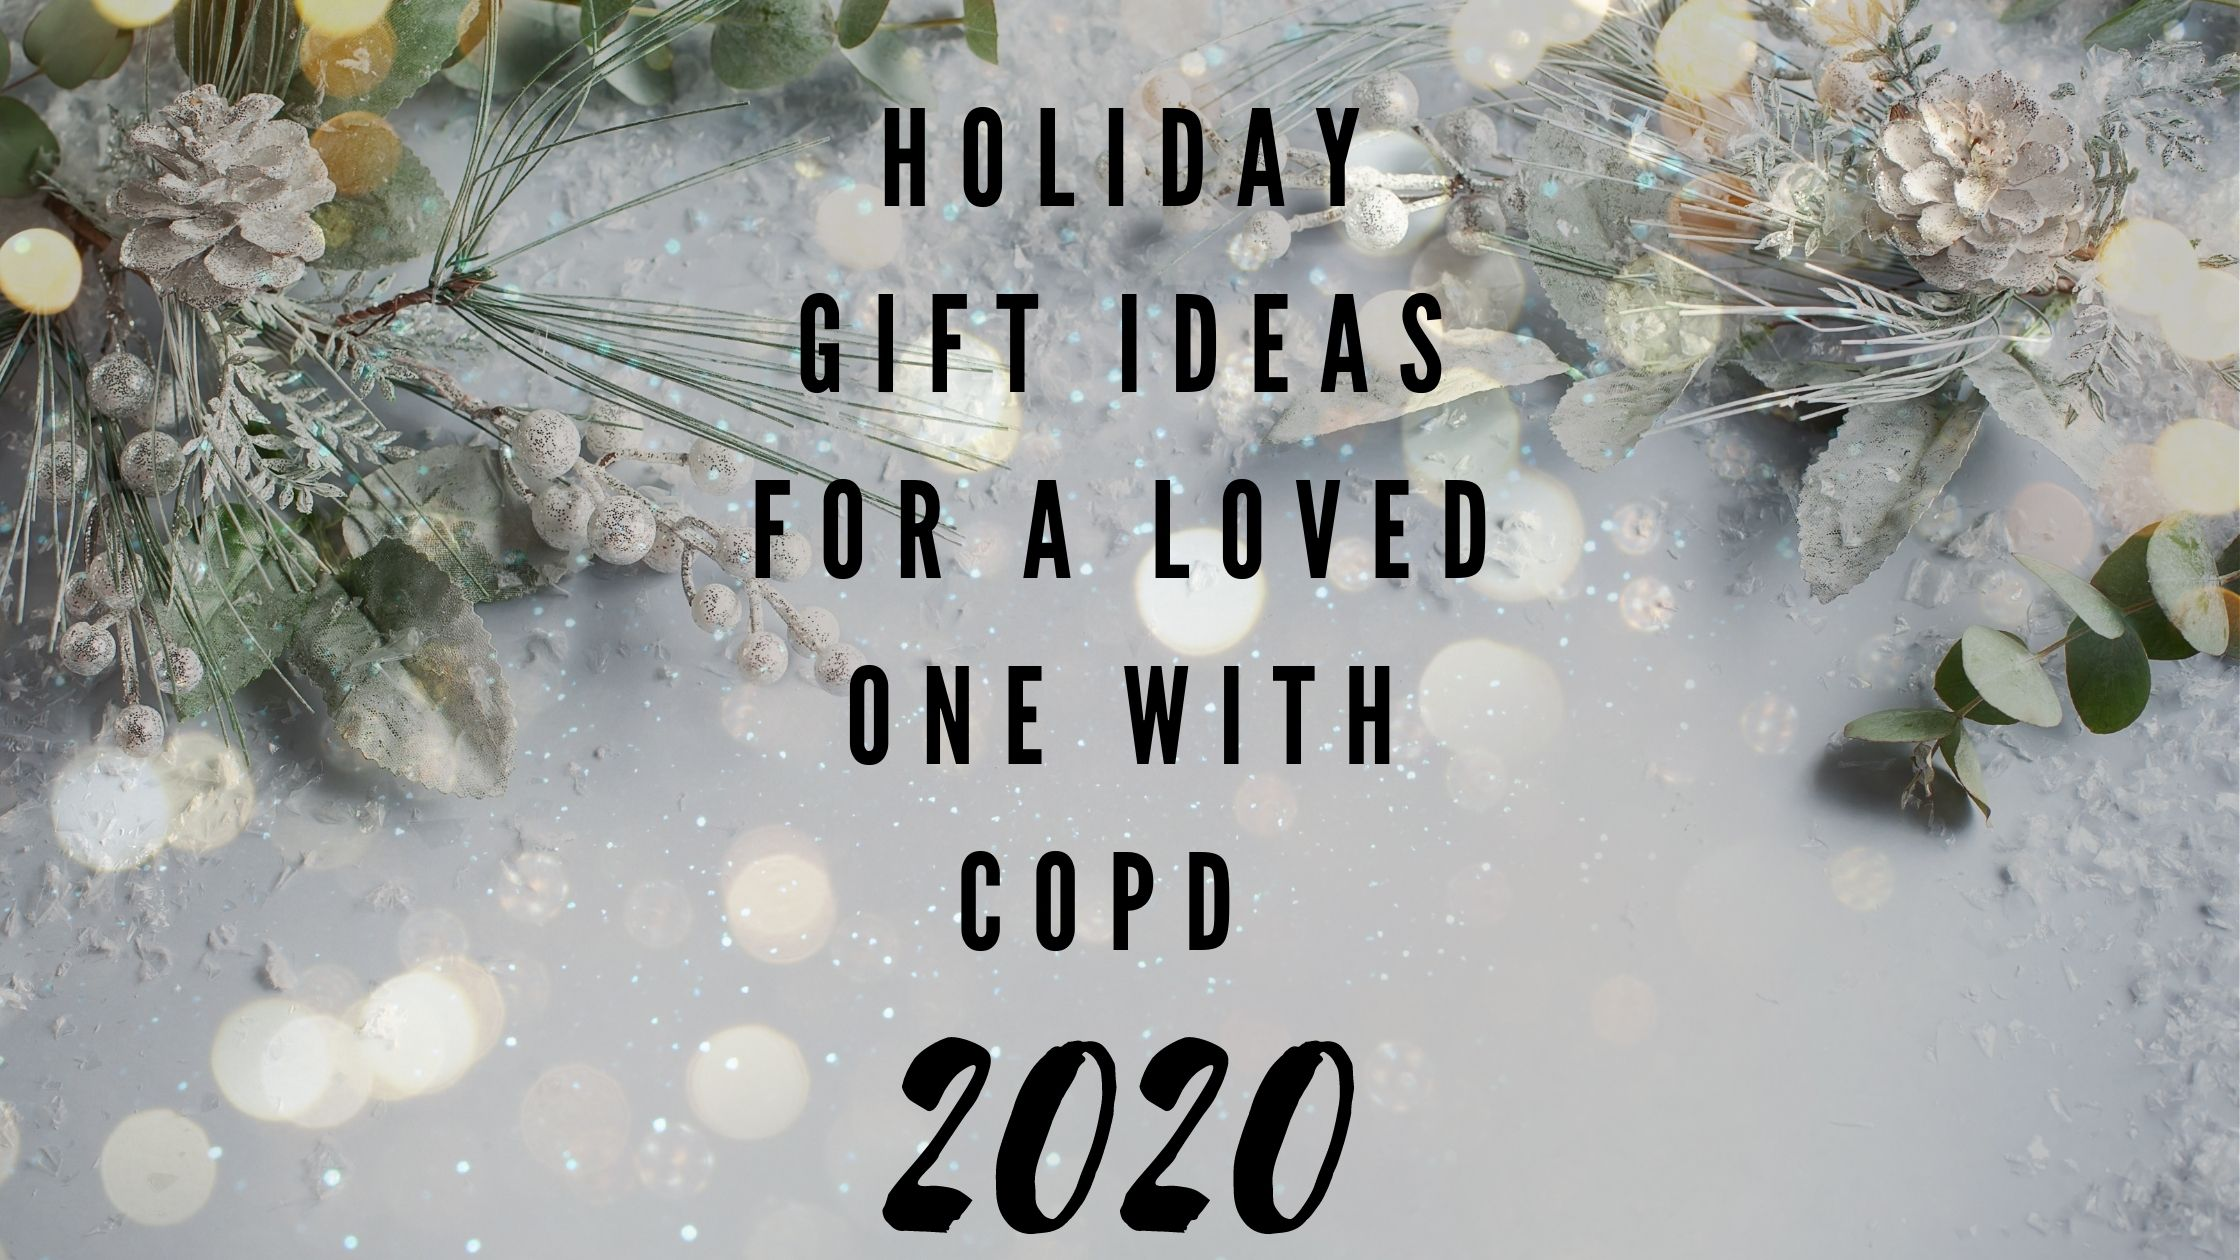 Holiday 2020 Gift Ideas for a Loved One with COPD